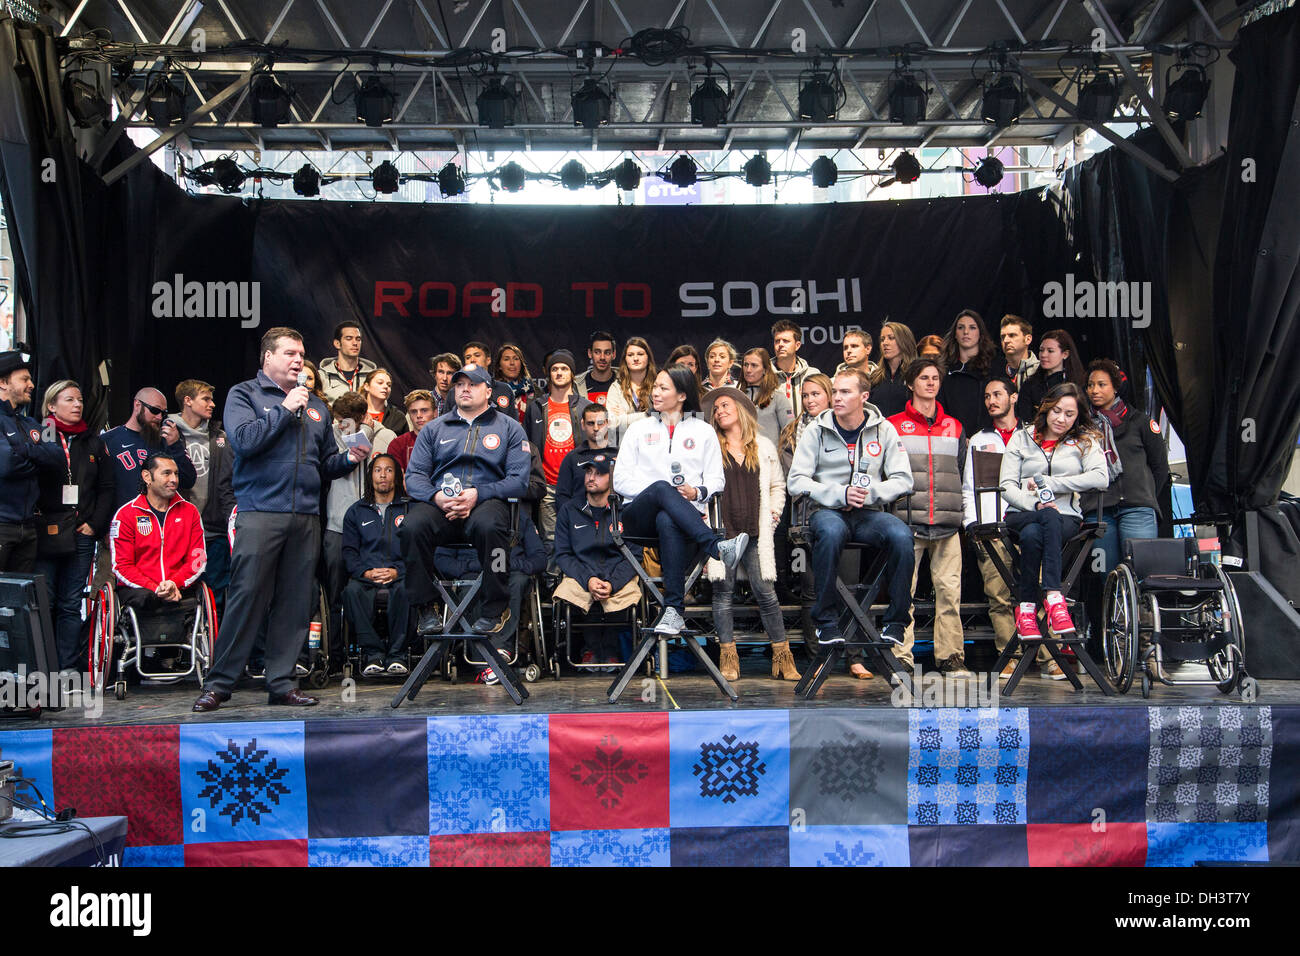 USA Athletes at the USOC 100 Day Countdown to the Sochi 2014 Olympic Winter Games - Stock Image